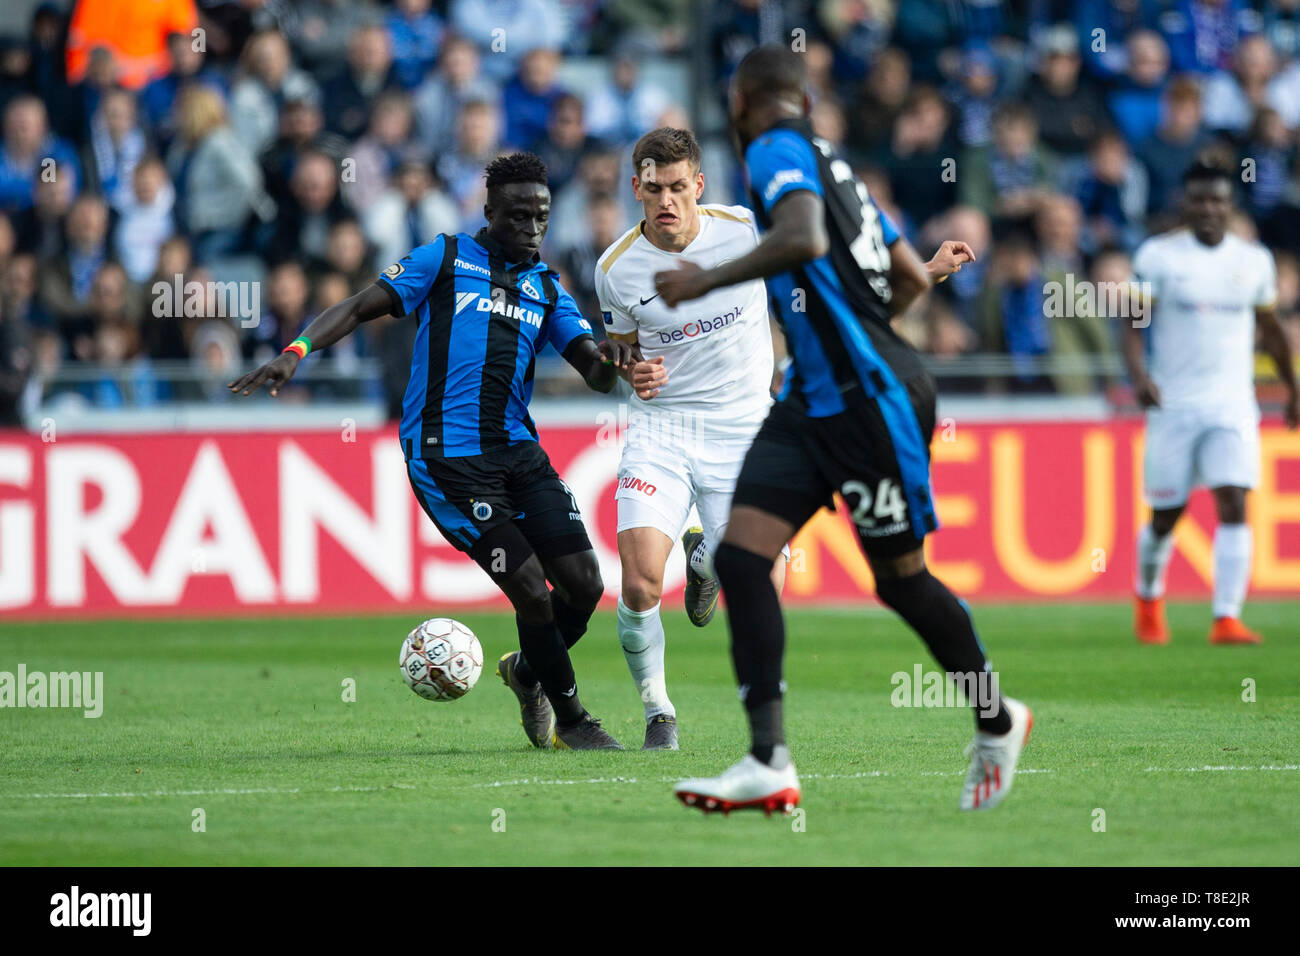 Brugge Belgium May 12 Krepin Diatta Of Club Brugge And Joakim Maehle Of Genk Fight For The Ball During The Jupiler Pro League Play Off 1 Match Day 8 Between Club Brugge